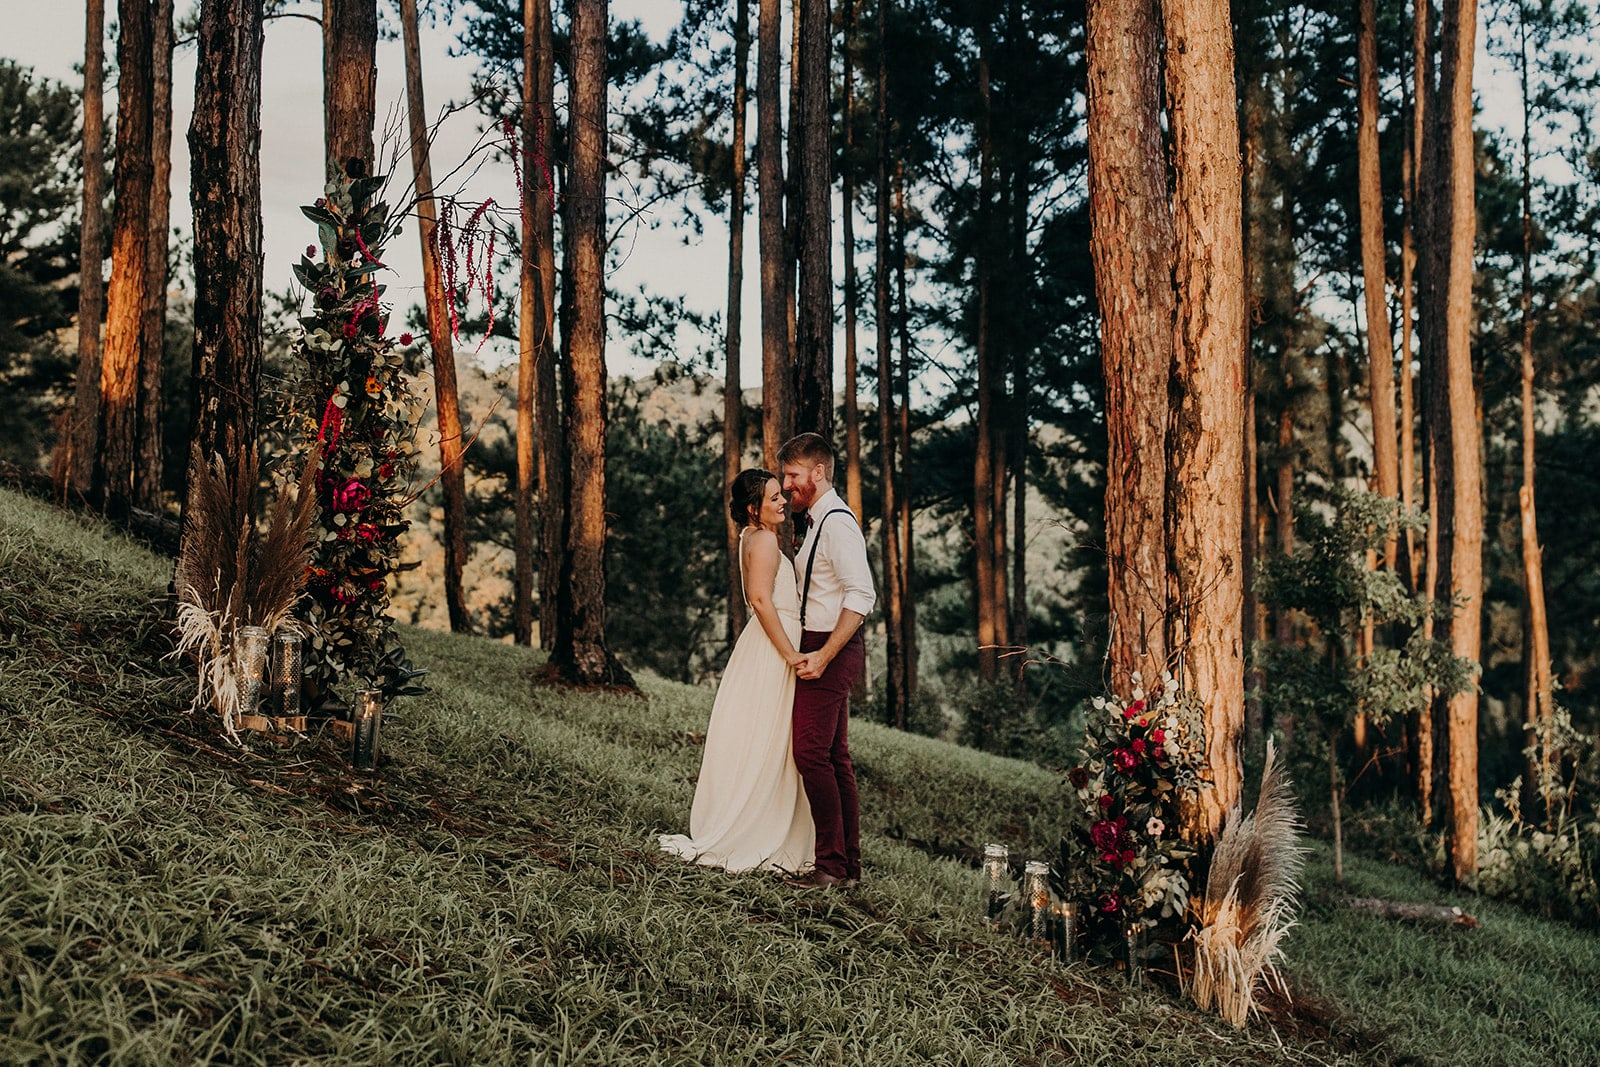 Bohemian Forest Styled Shoot in Trinidad & Tobago, Photography by Amber Dawn Photography for Destination Wedding Blog Adriana Weddings